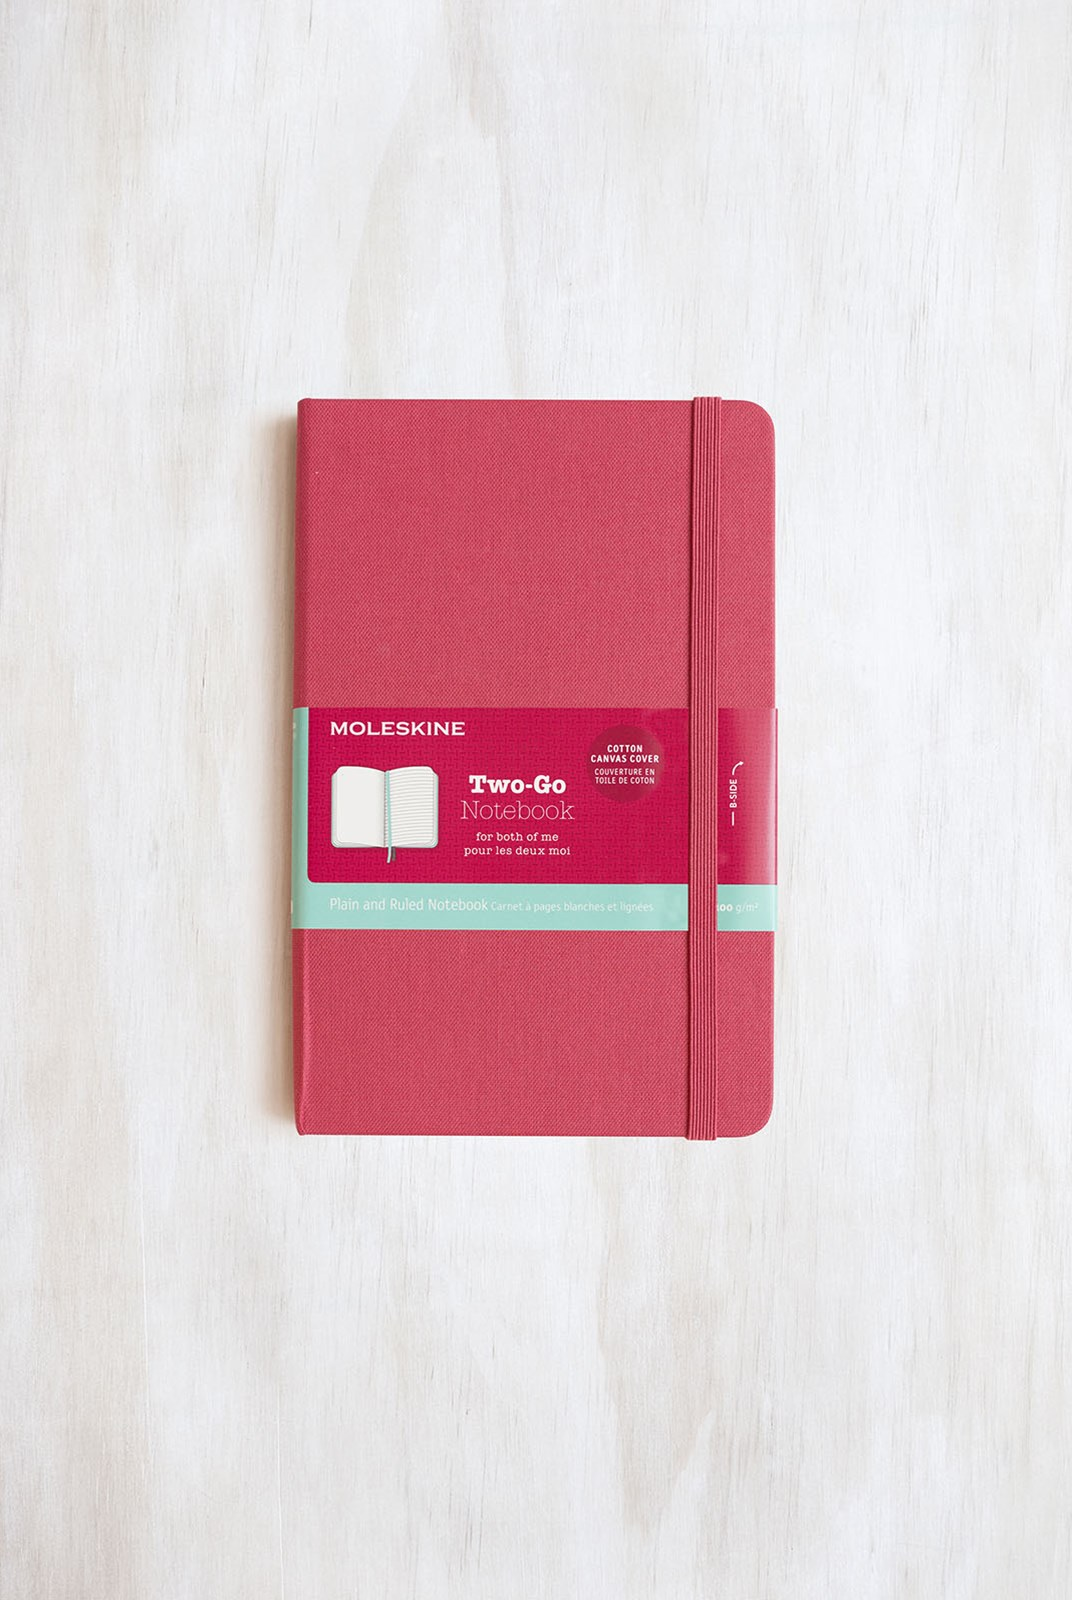 Moleskine - Two-Go Notebook - Canvas Cover - Ruled + Plain - Medium - Raspberry Red